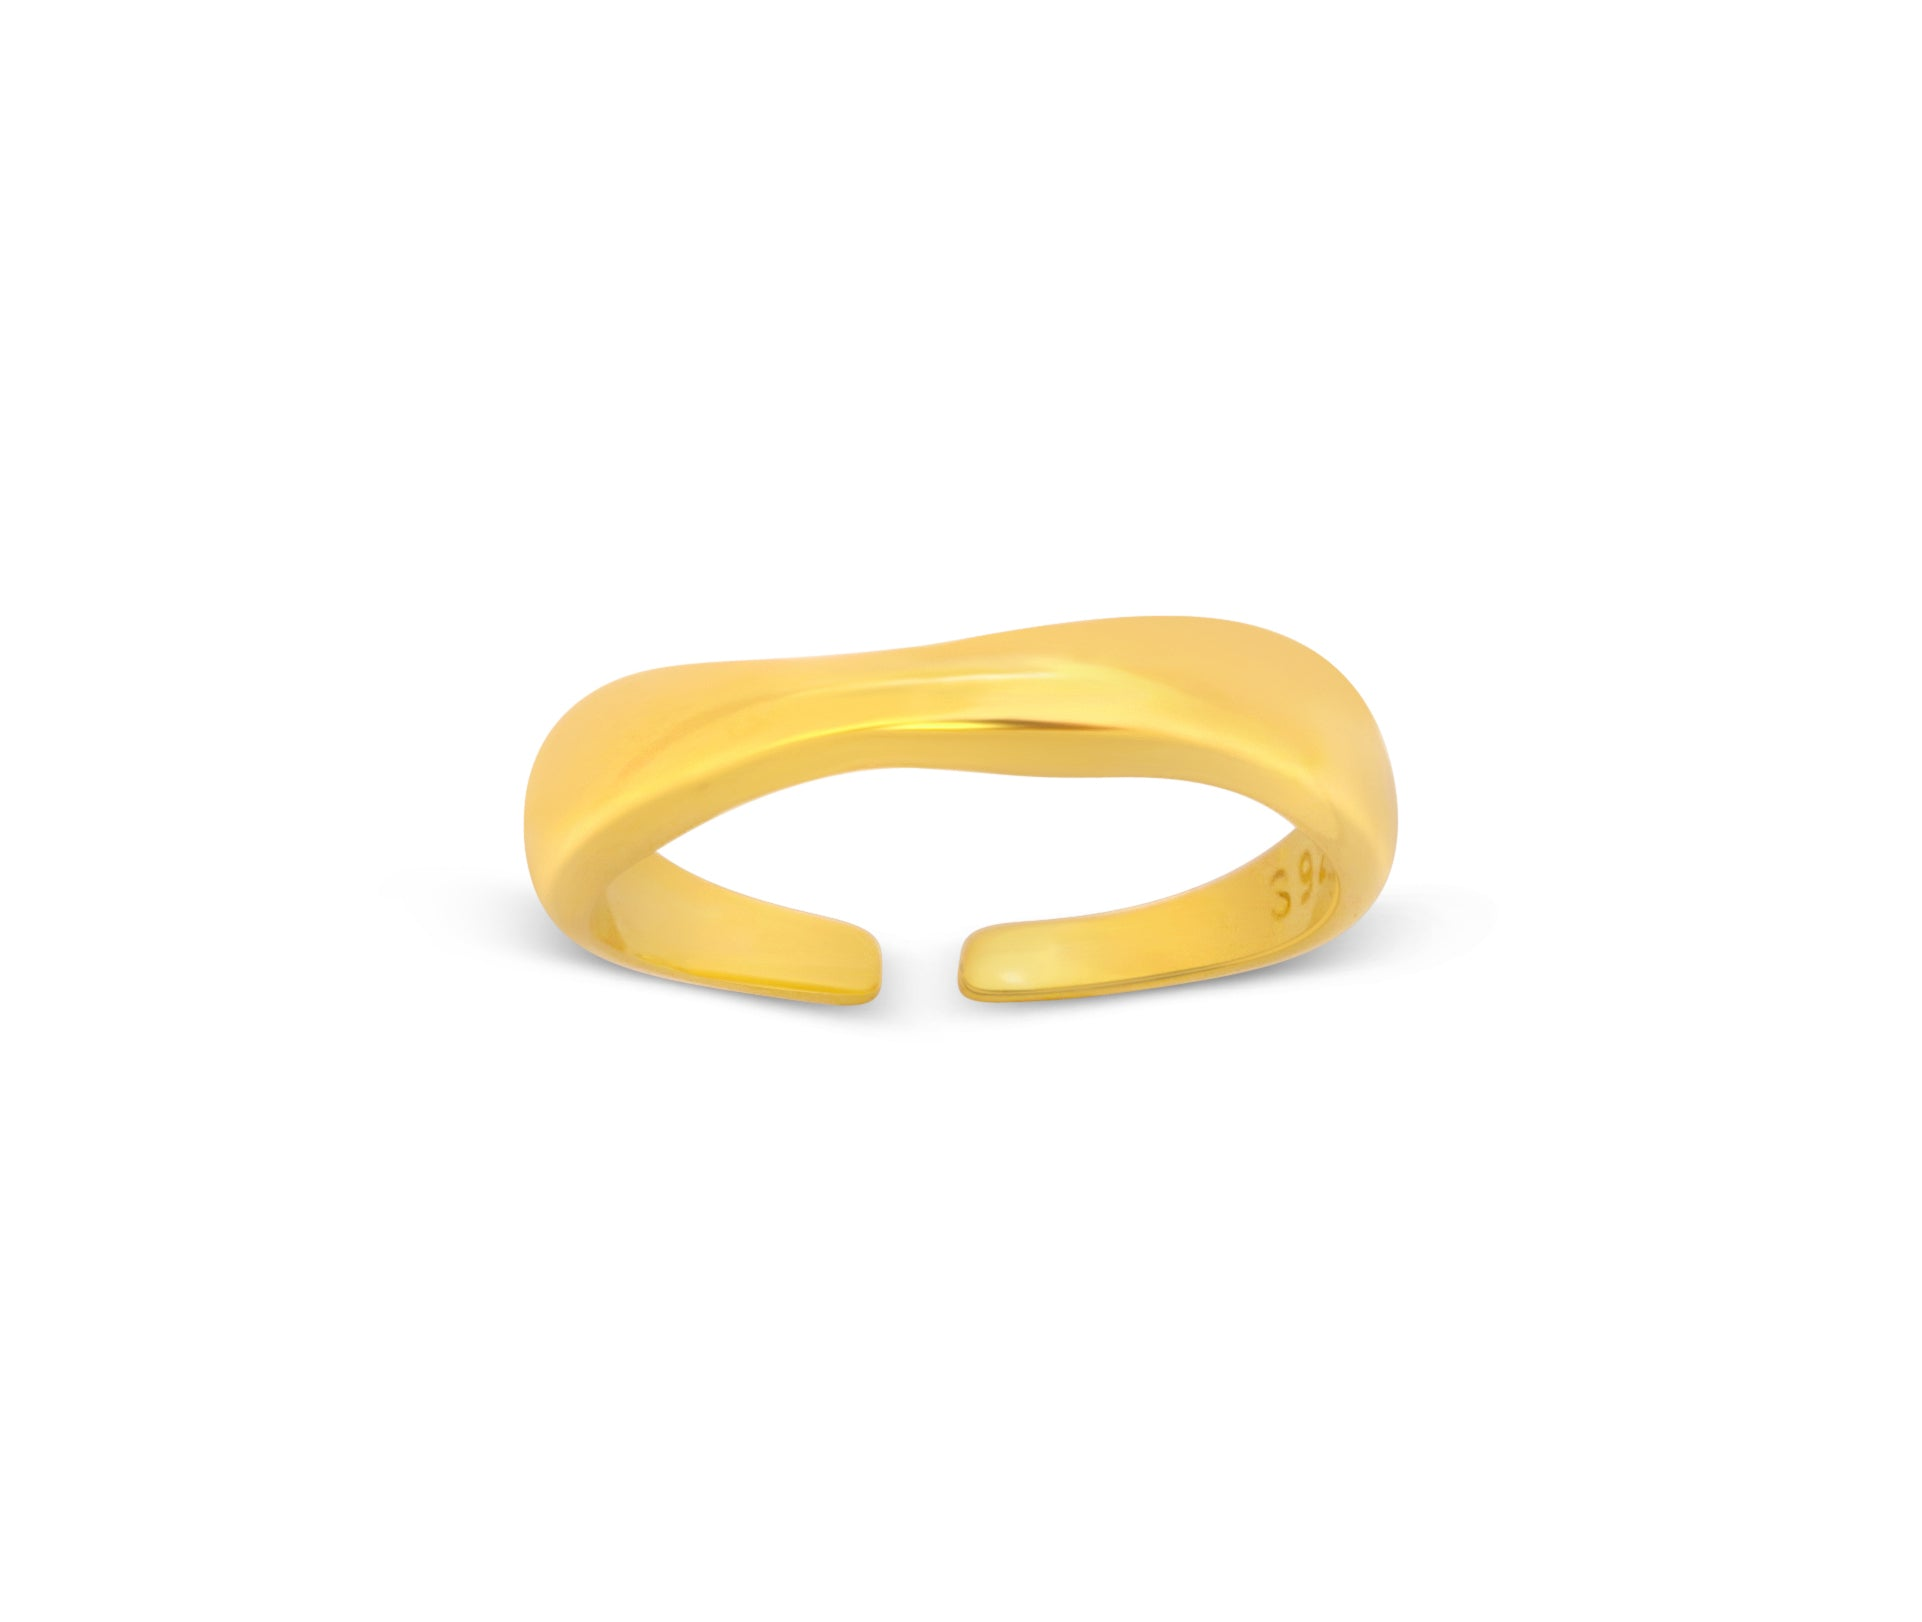 Geometric Wavy Adjustable Ring - Aiverc | Designer Watches